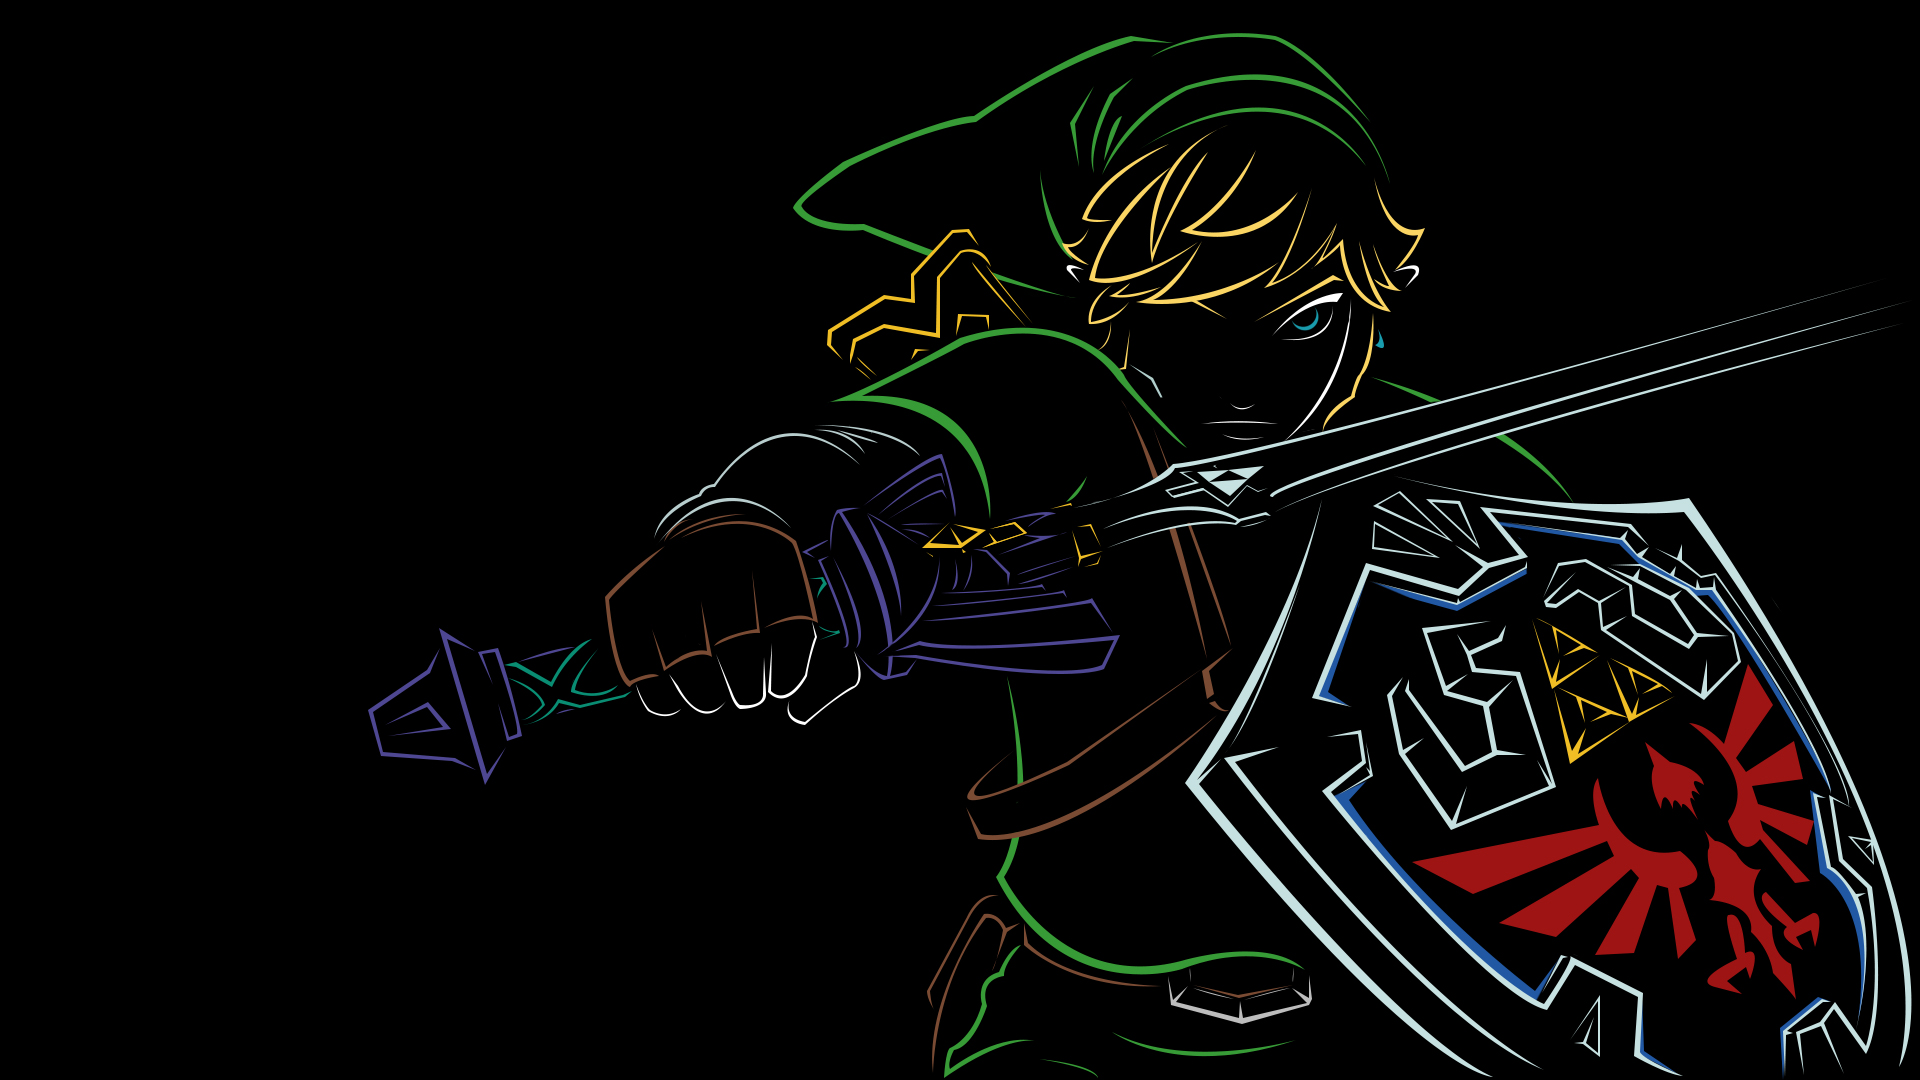 Android Htc Sensation The Legend Of Zelda Wallpapers Hd 1920x1080